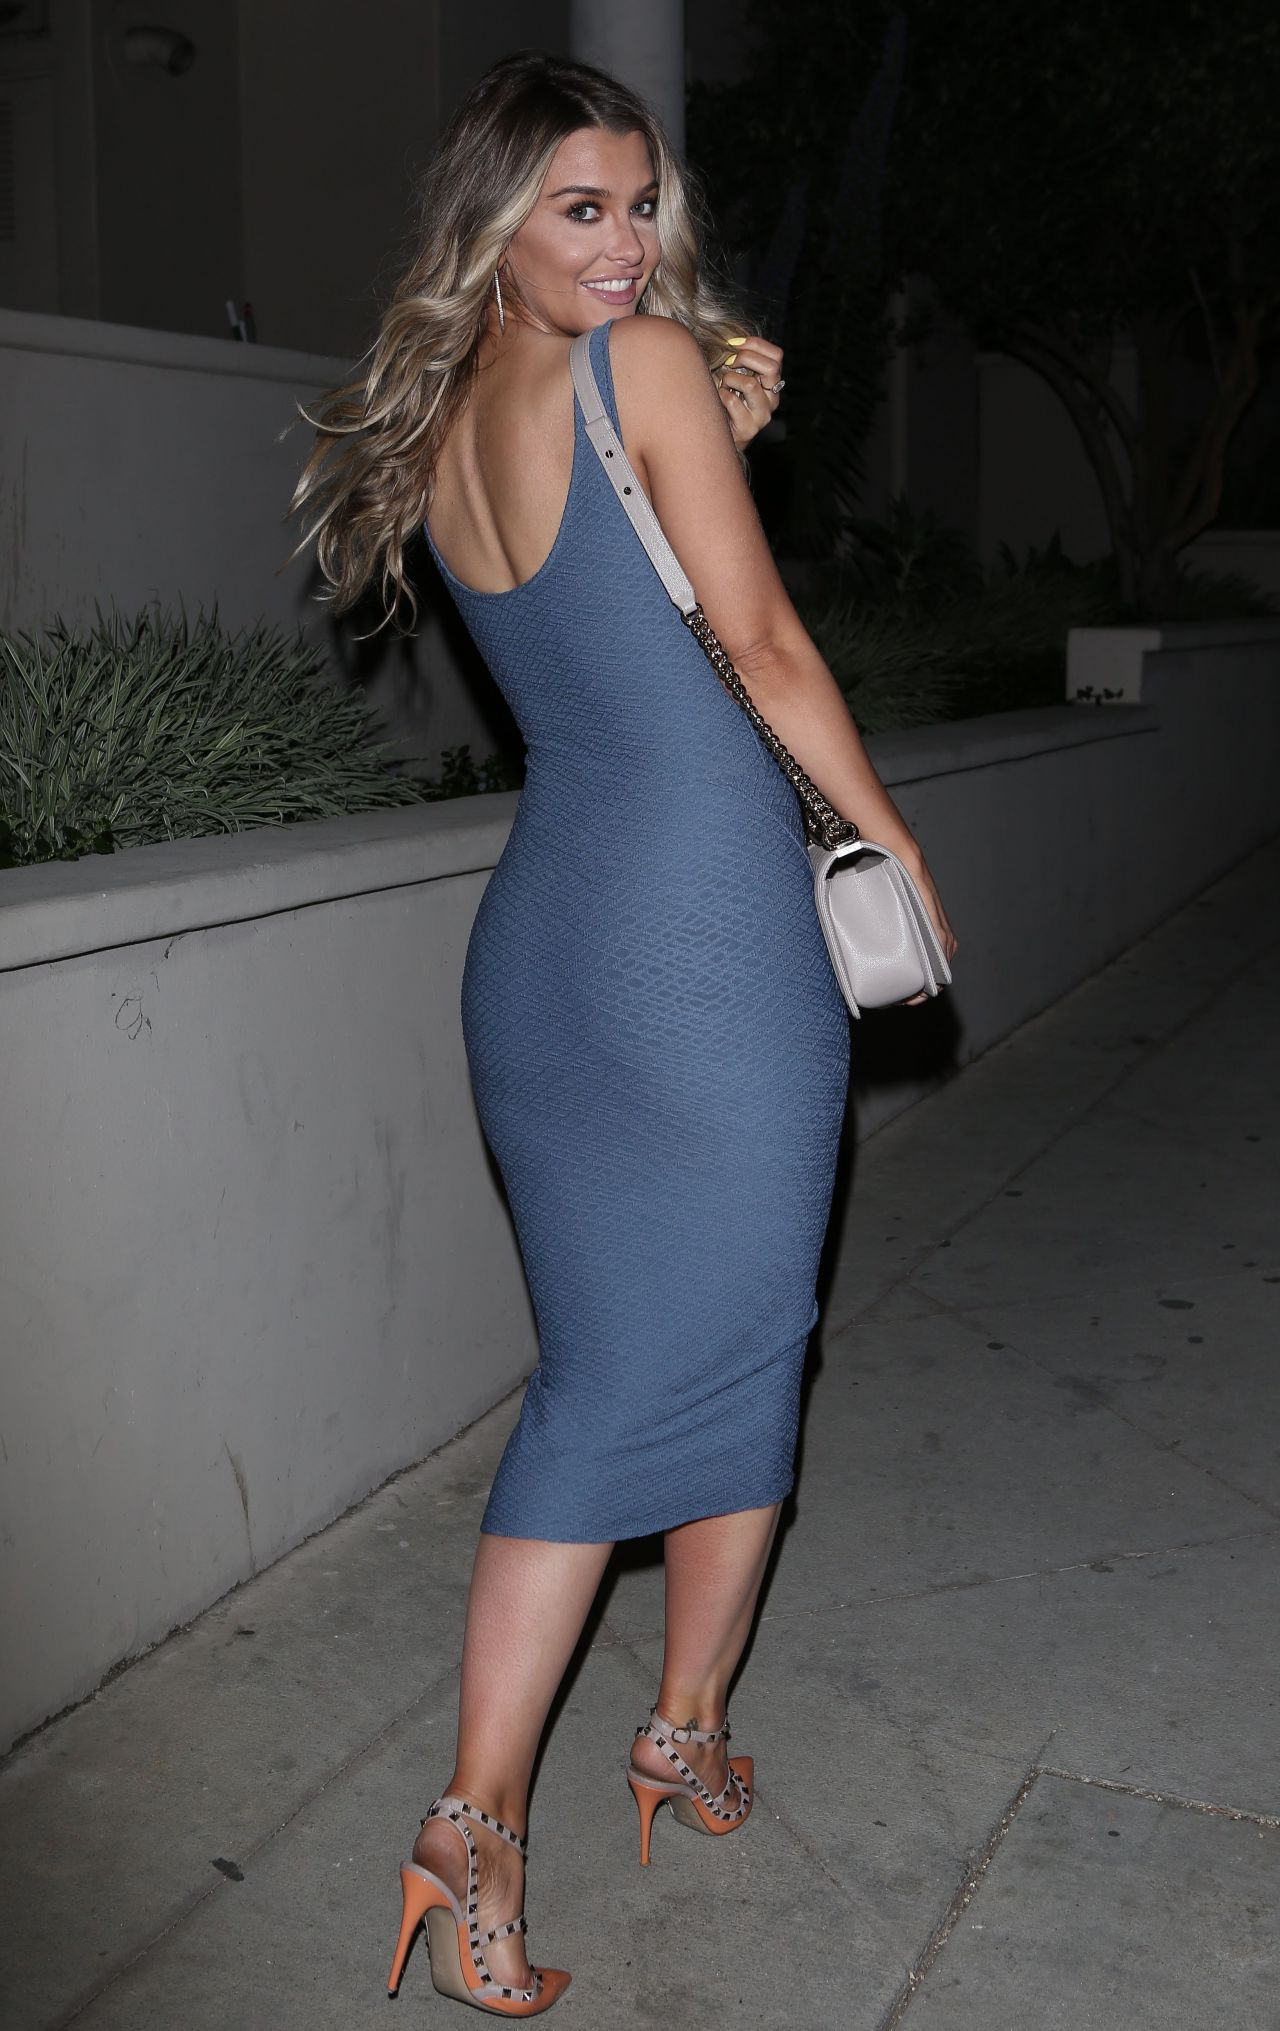 Sears in a Skin Tight Boxum Dress and Heals in West Hollywood 4/5/2017